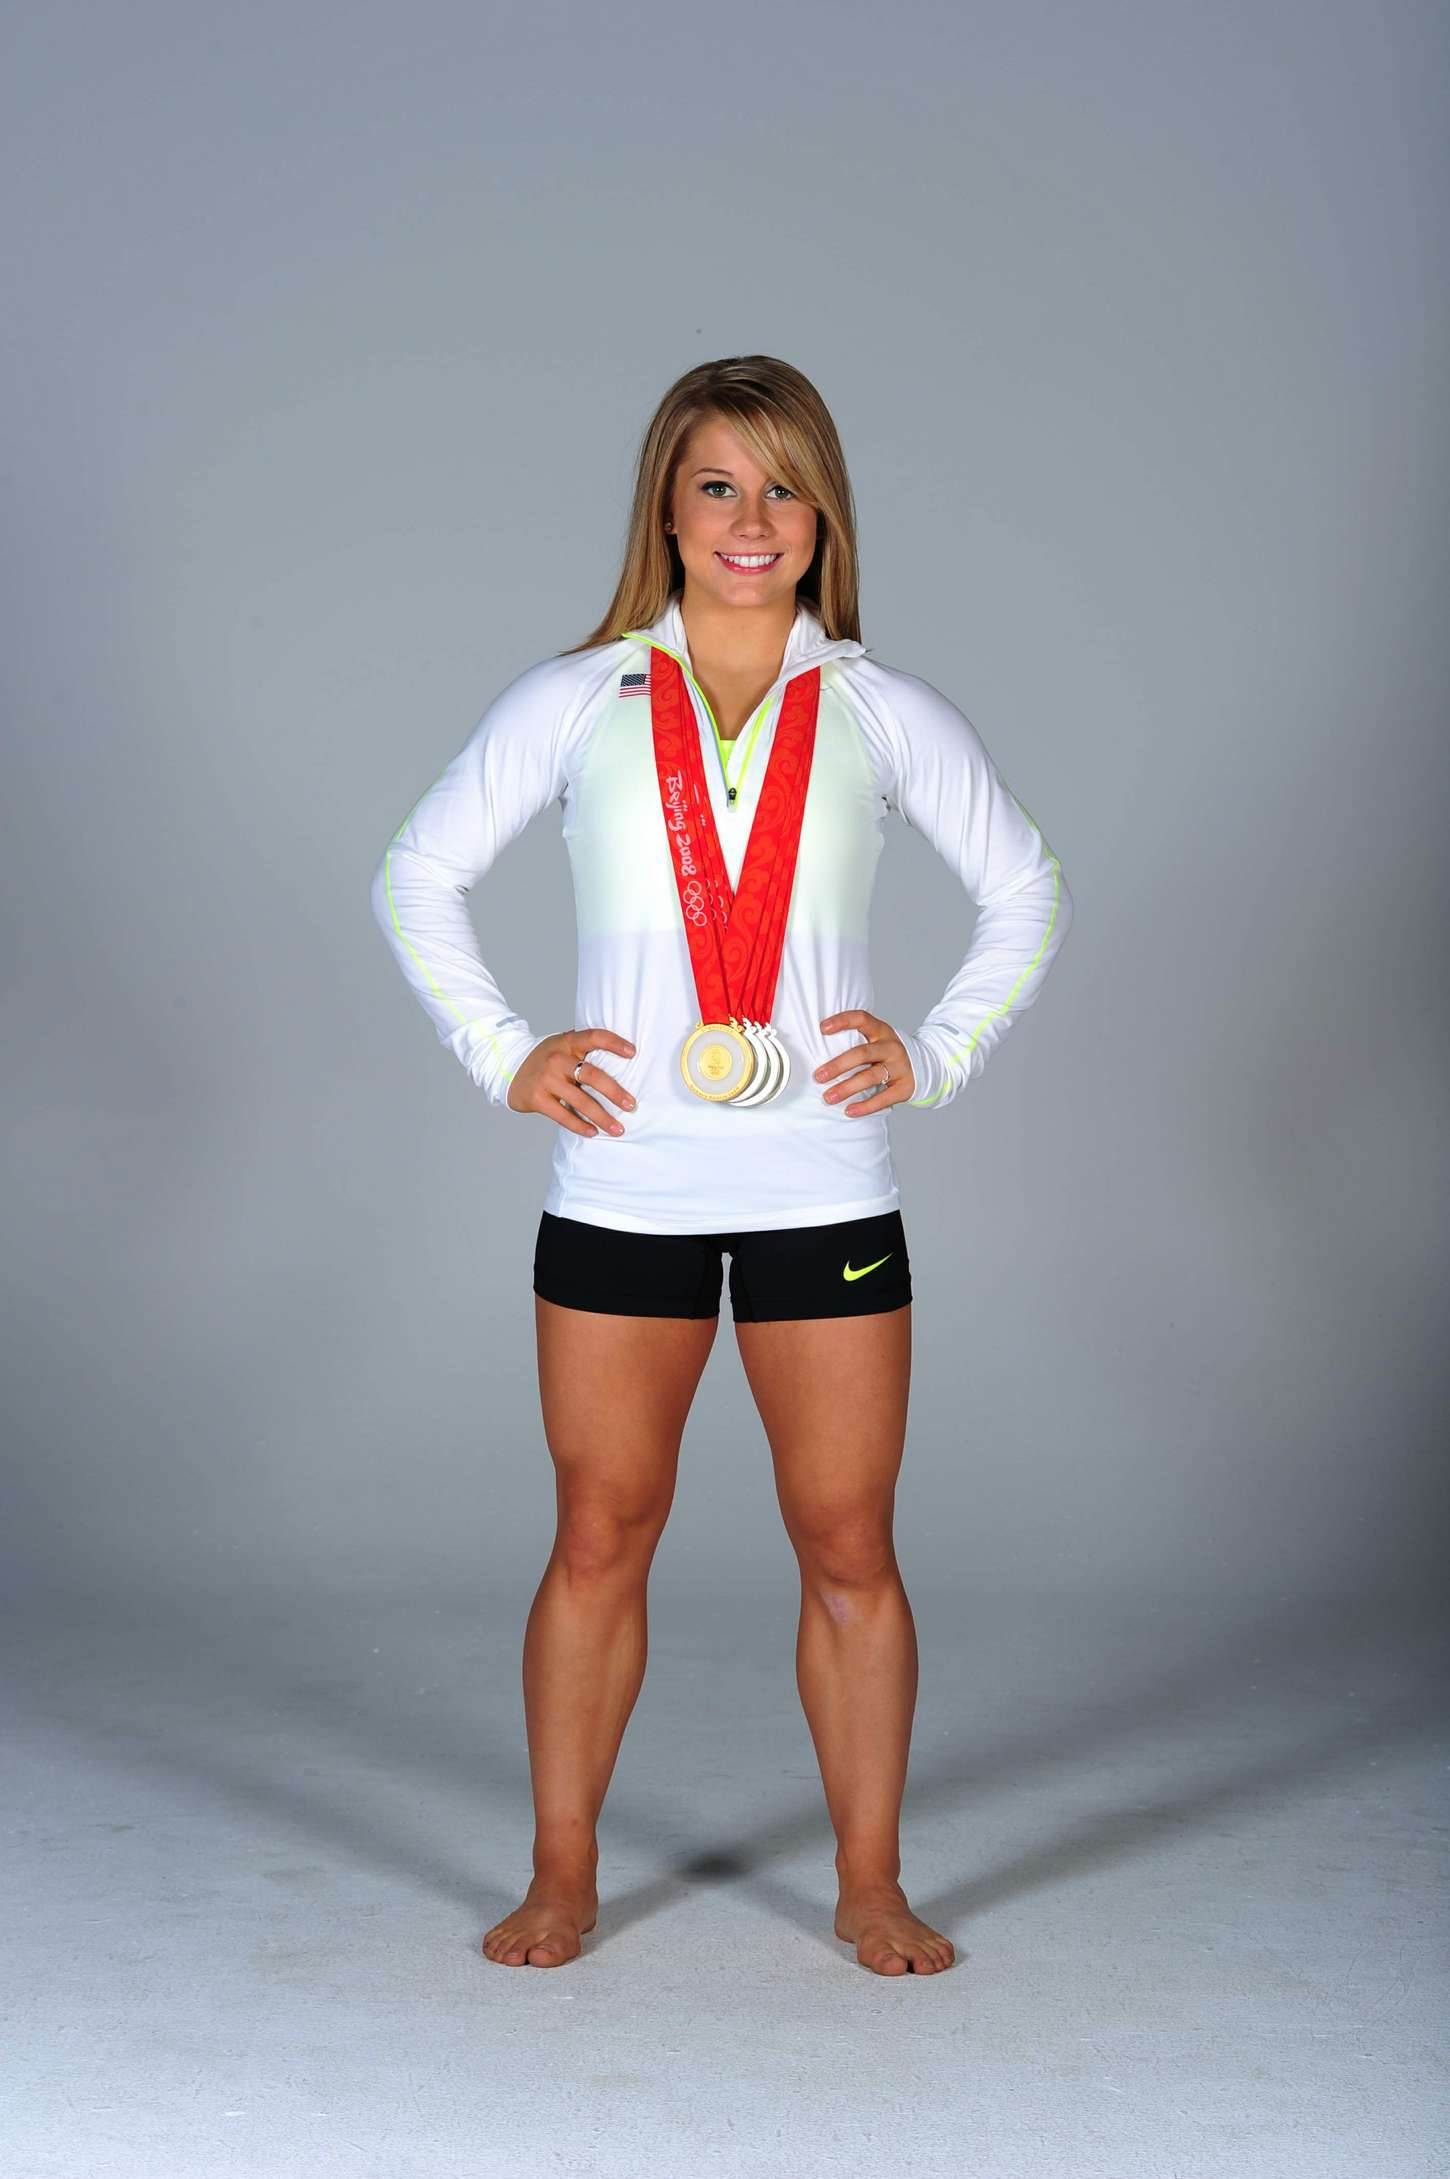 shawn johnson beamshawn johnson gymnast, shawn johnson derek hough, shawn johnson floor music, shawn johnson floor 2008, shawn johnson comments in rio, shawn johnson dancing with the stars, shawn johnson age, shawn johnson balance beam, shawn johnson instagram, shawn johnson beam, shaun johnson rugby